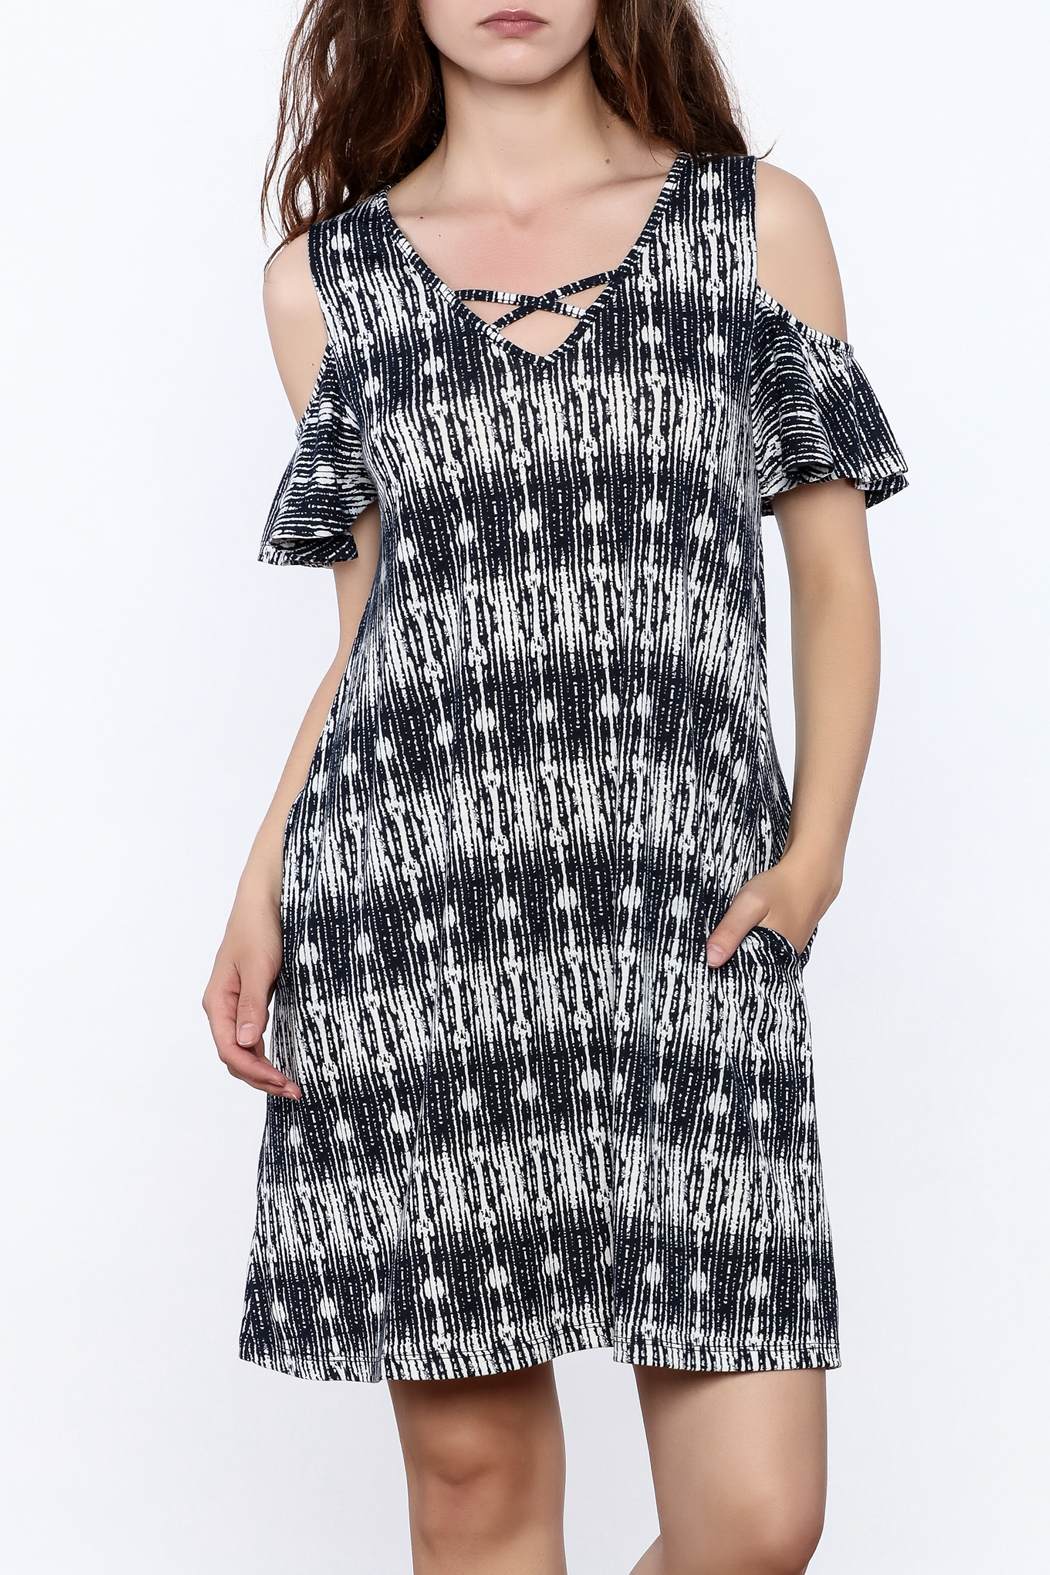 y&i clothing boutique Black Printed Oversized Dress - Front Cropped Image